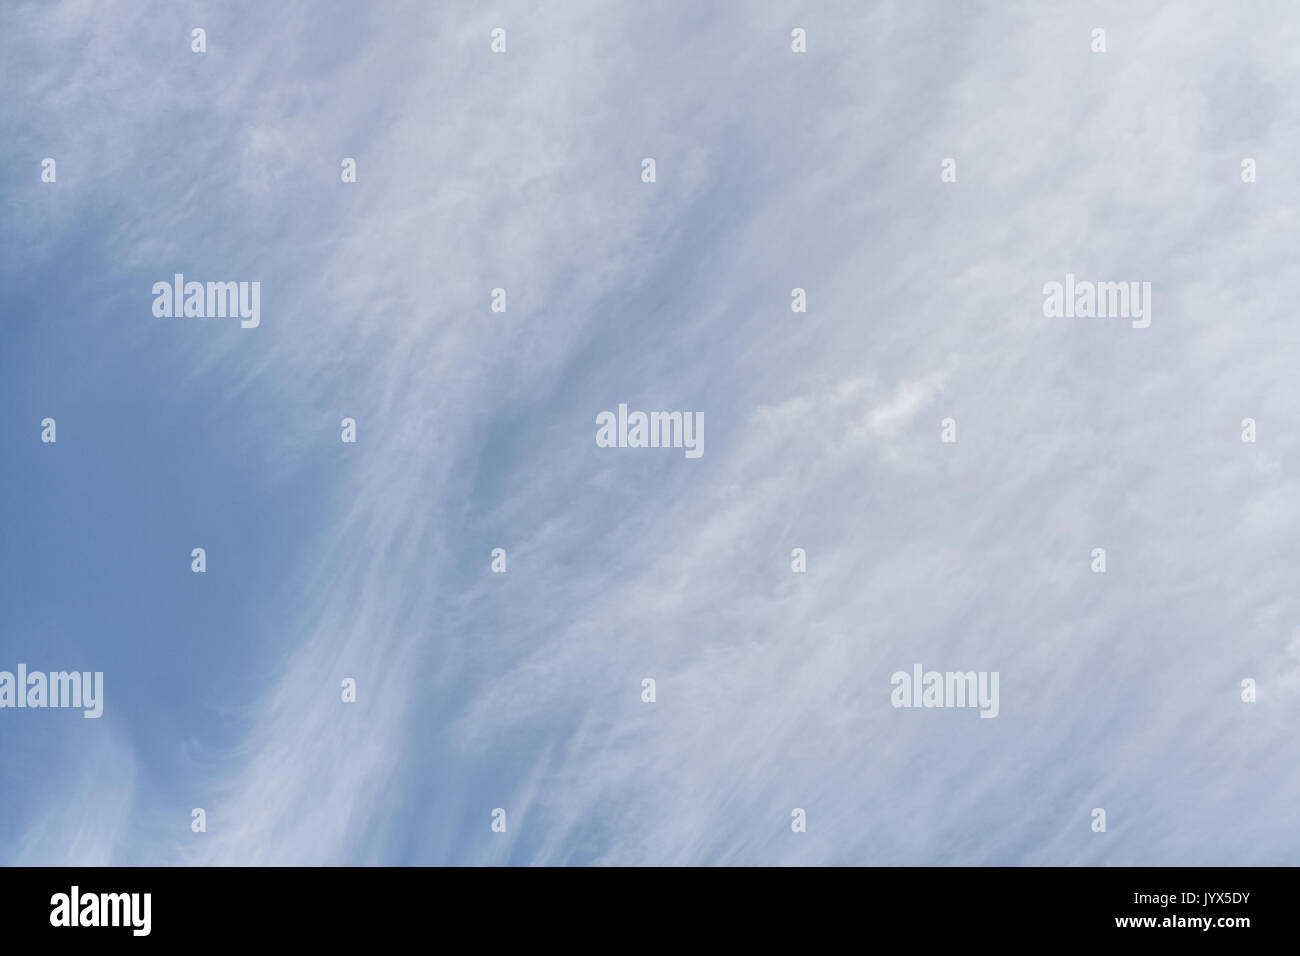 Blue skies with white cirrus clouds - Stock Image